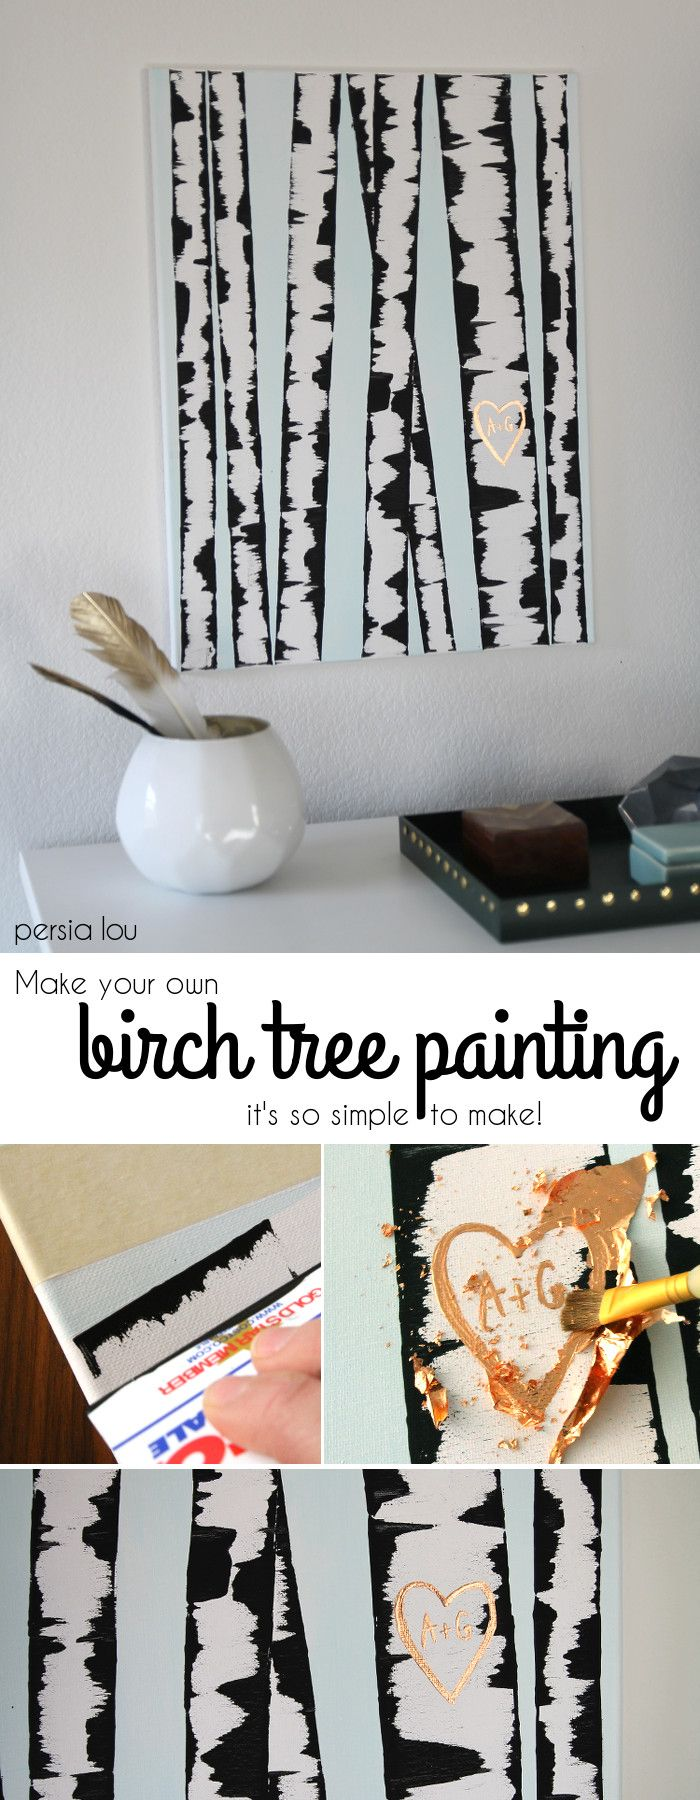 Cheap and Easy Homemade Wall Art Design | http://diyready.com/diy-wall-art-you-can-make-in-under-an-hour/